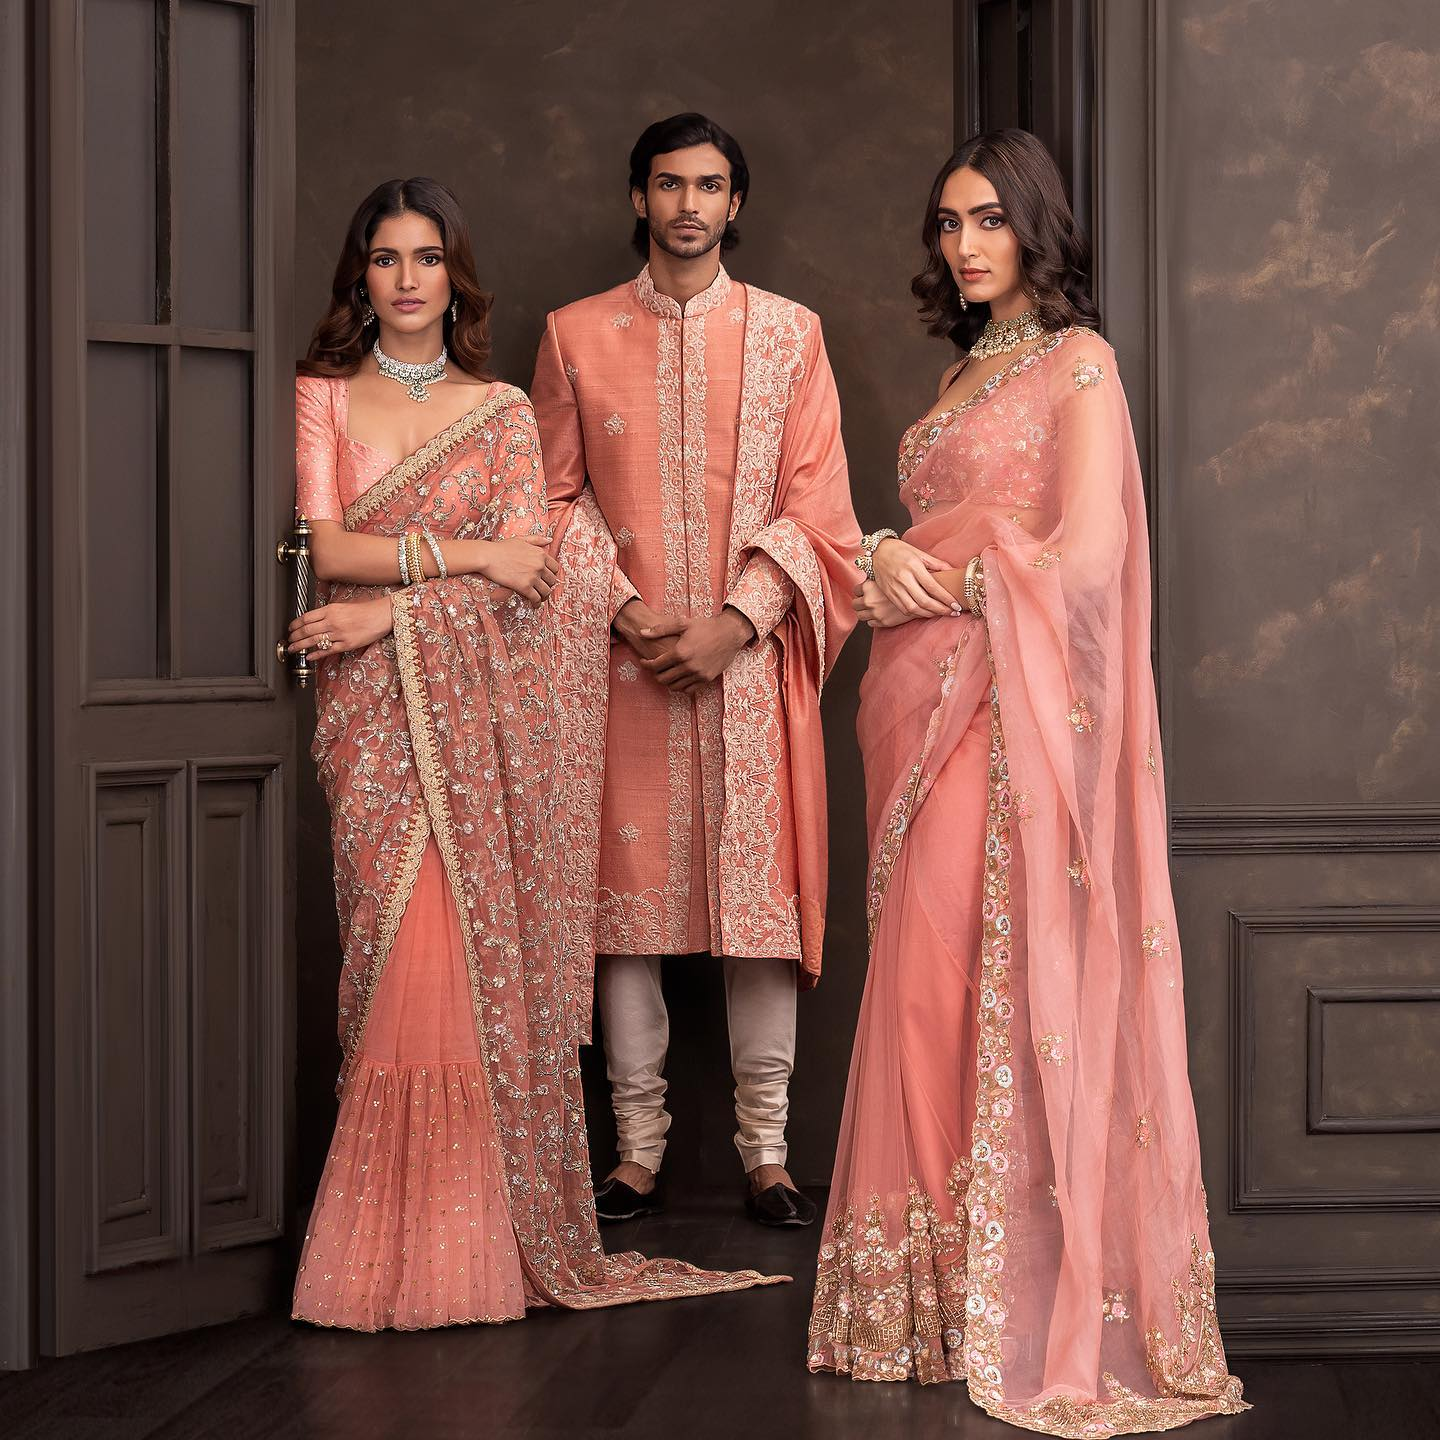 Wedding Couture 21-22. Shyamal and Bhumika wedding saree. . The latest Wedding Couture collection is now available in-store! 2021-10-15